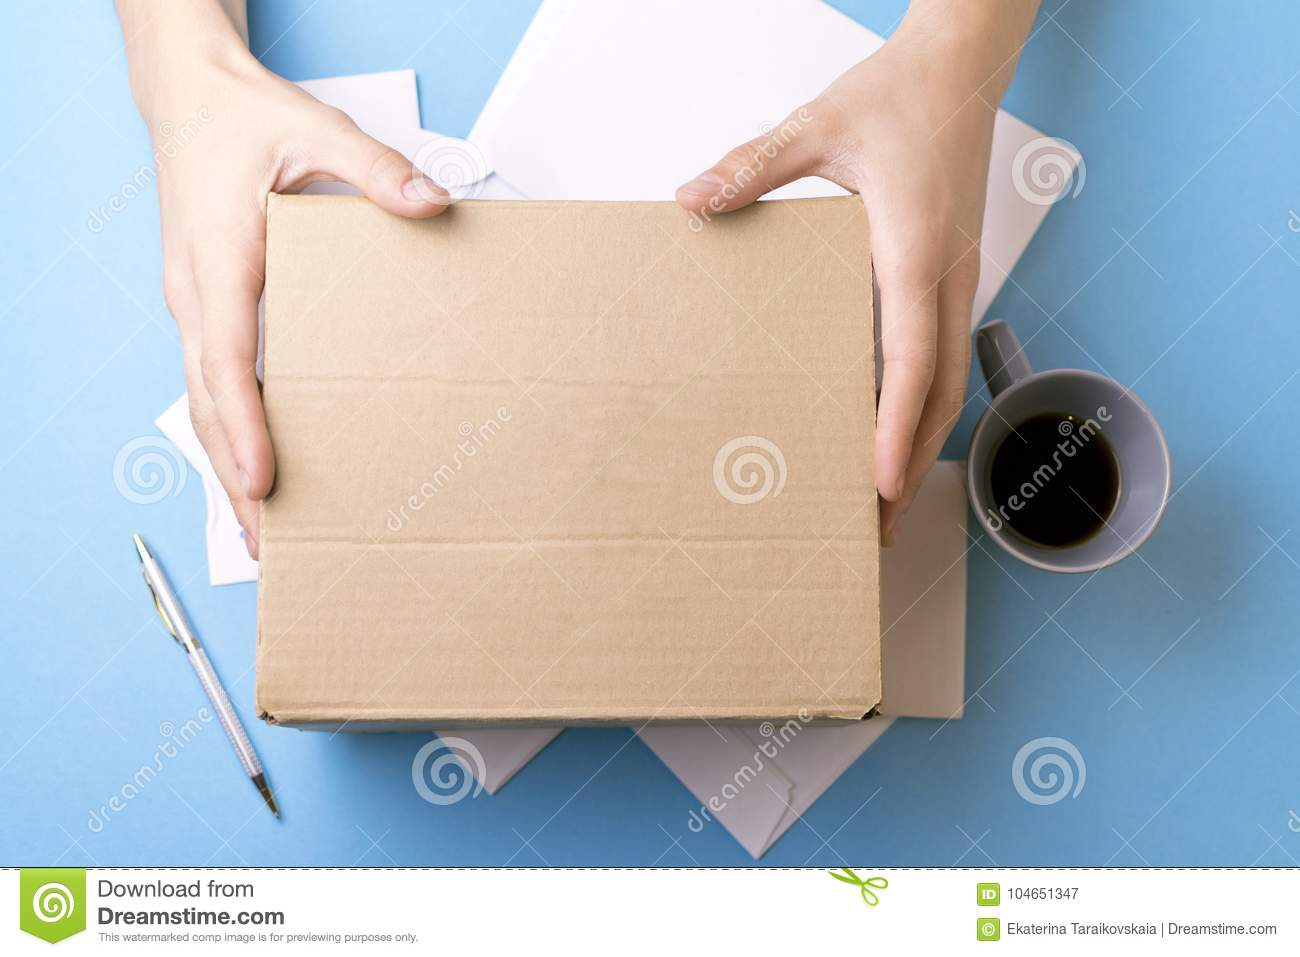 The young man signs the letters and parcels. The concept of service delivery, the post office.